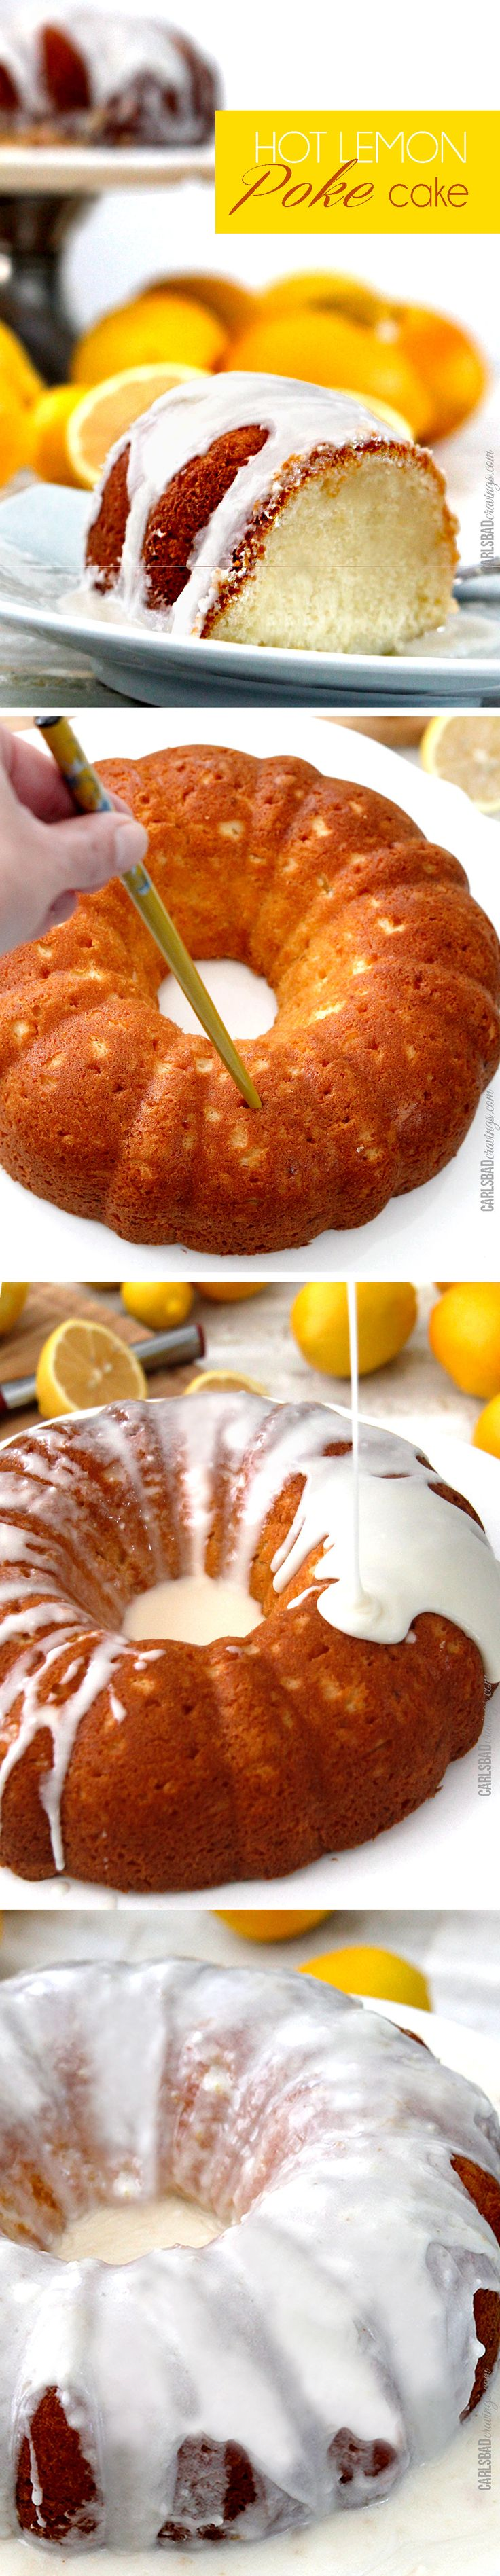 Perfect for Christmas! Award winning Hot Lemon Poke Cake - moist, sweet, lemon cake with the most amazing sweet citrus glaze seeping into the cake. I make this for all my company! and its so easy!